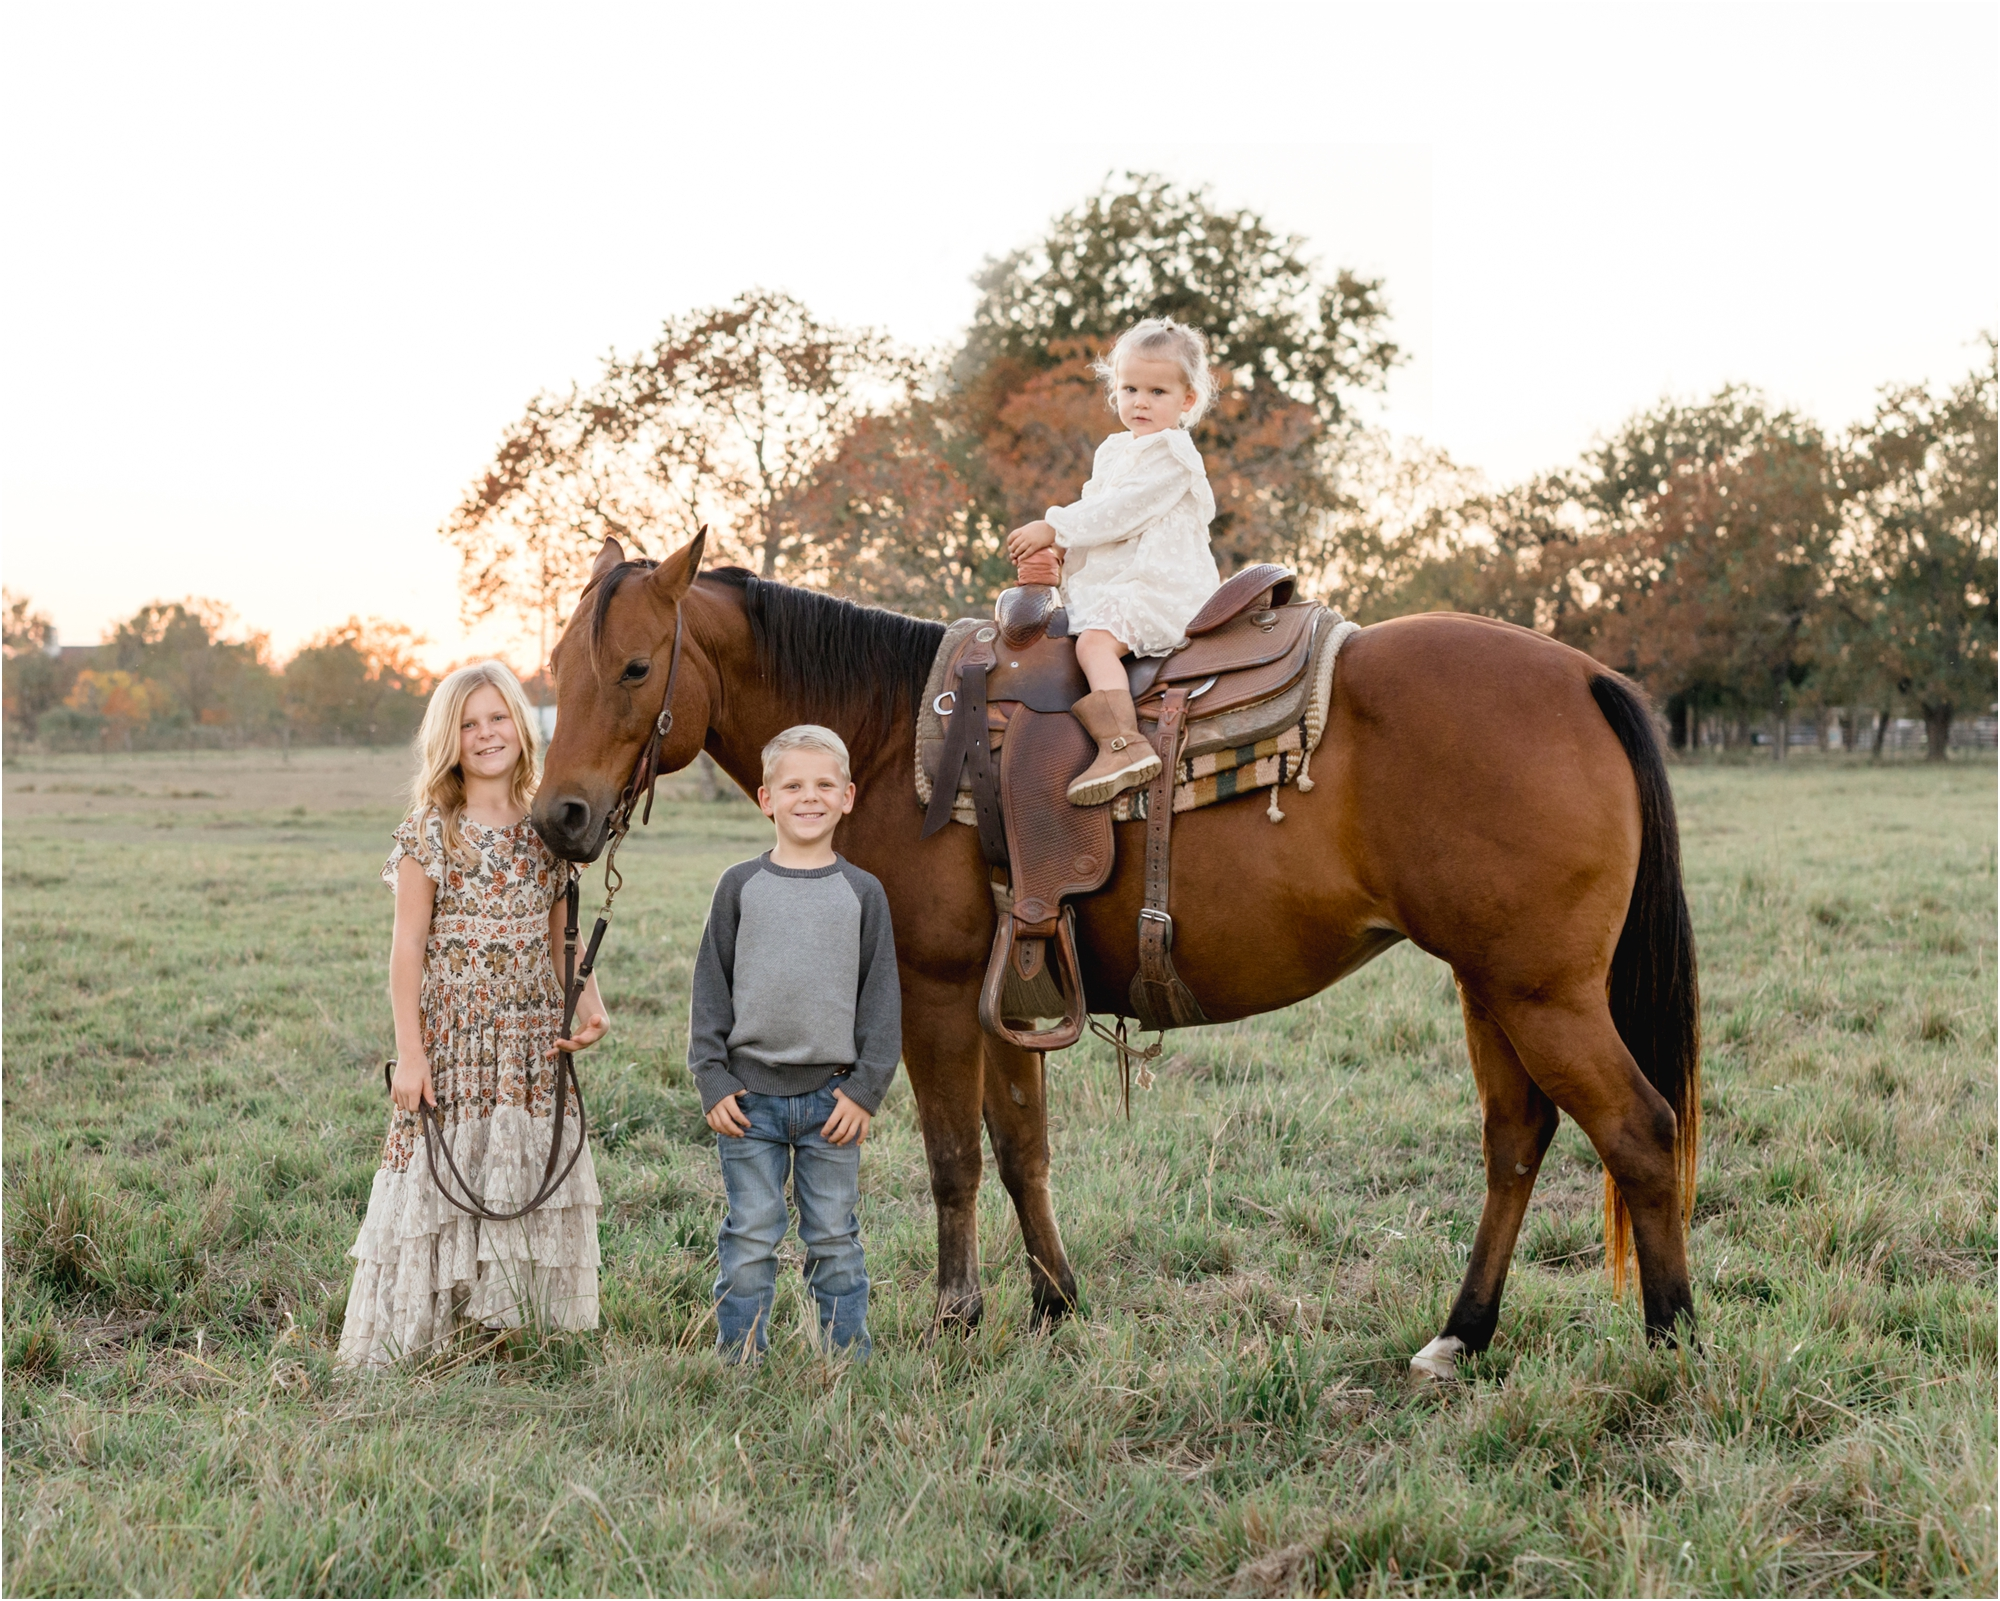 Portrait of siblings with their horse during sunset session by Katy family photographer, Lifetime of Clicks Photography.